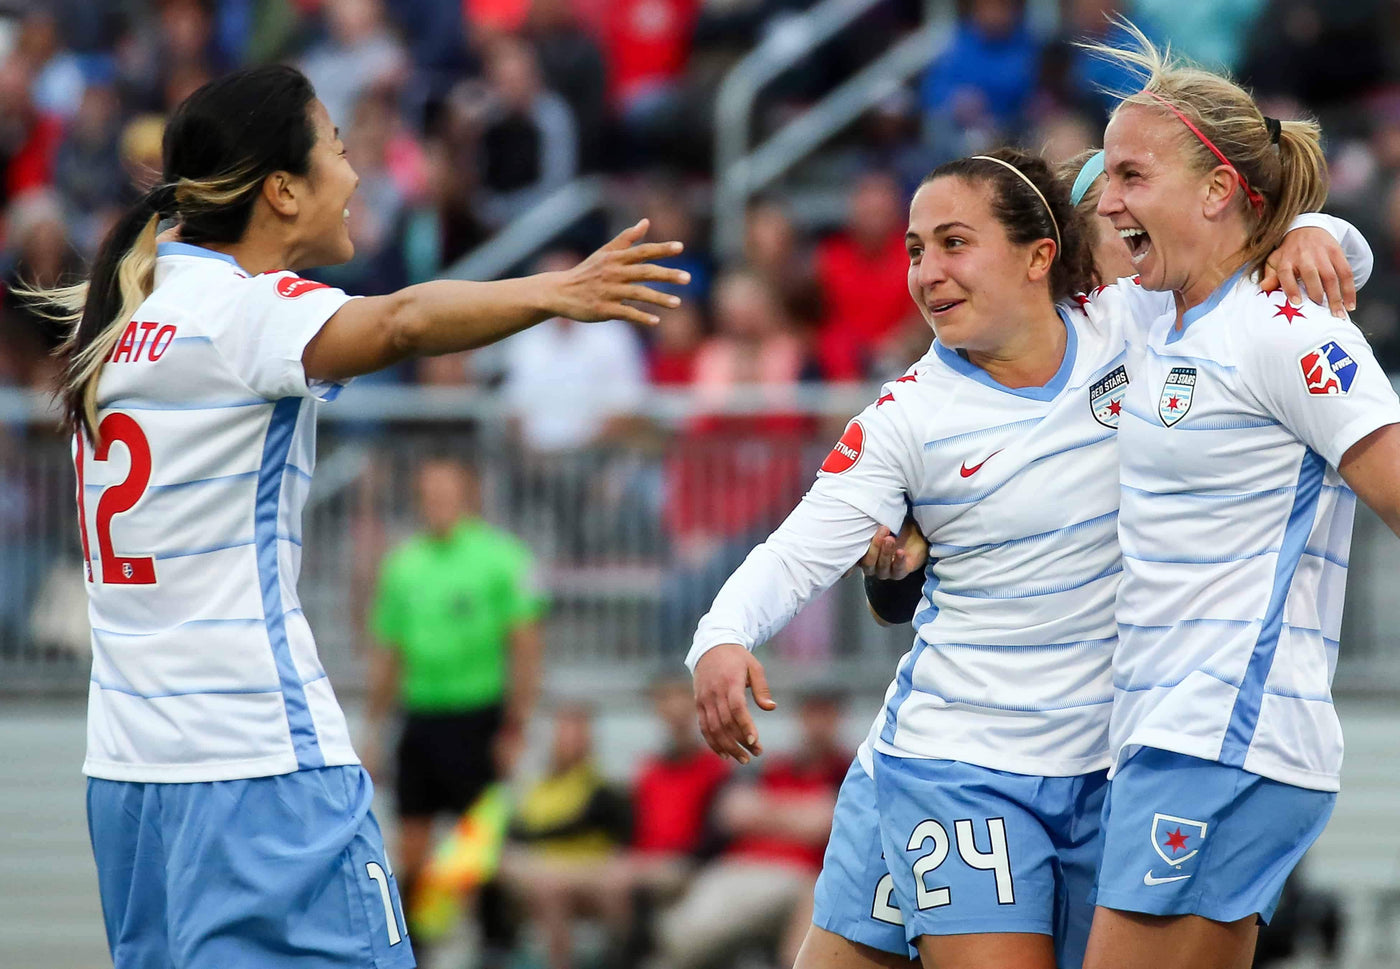 Nuzest is a Proud Sponsor of the Chicago Red Stars